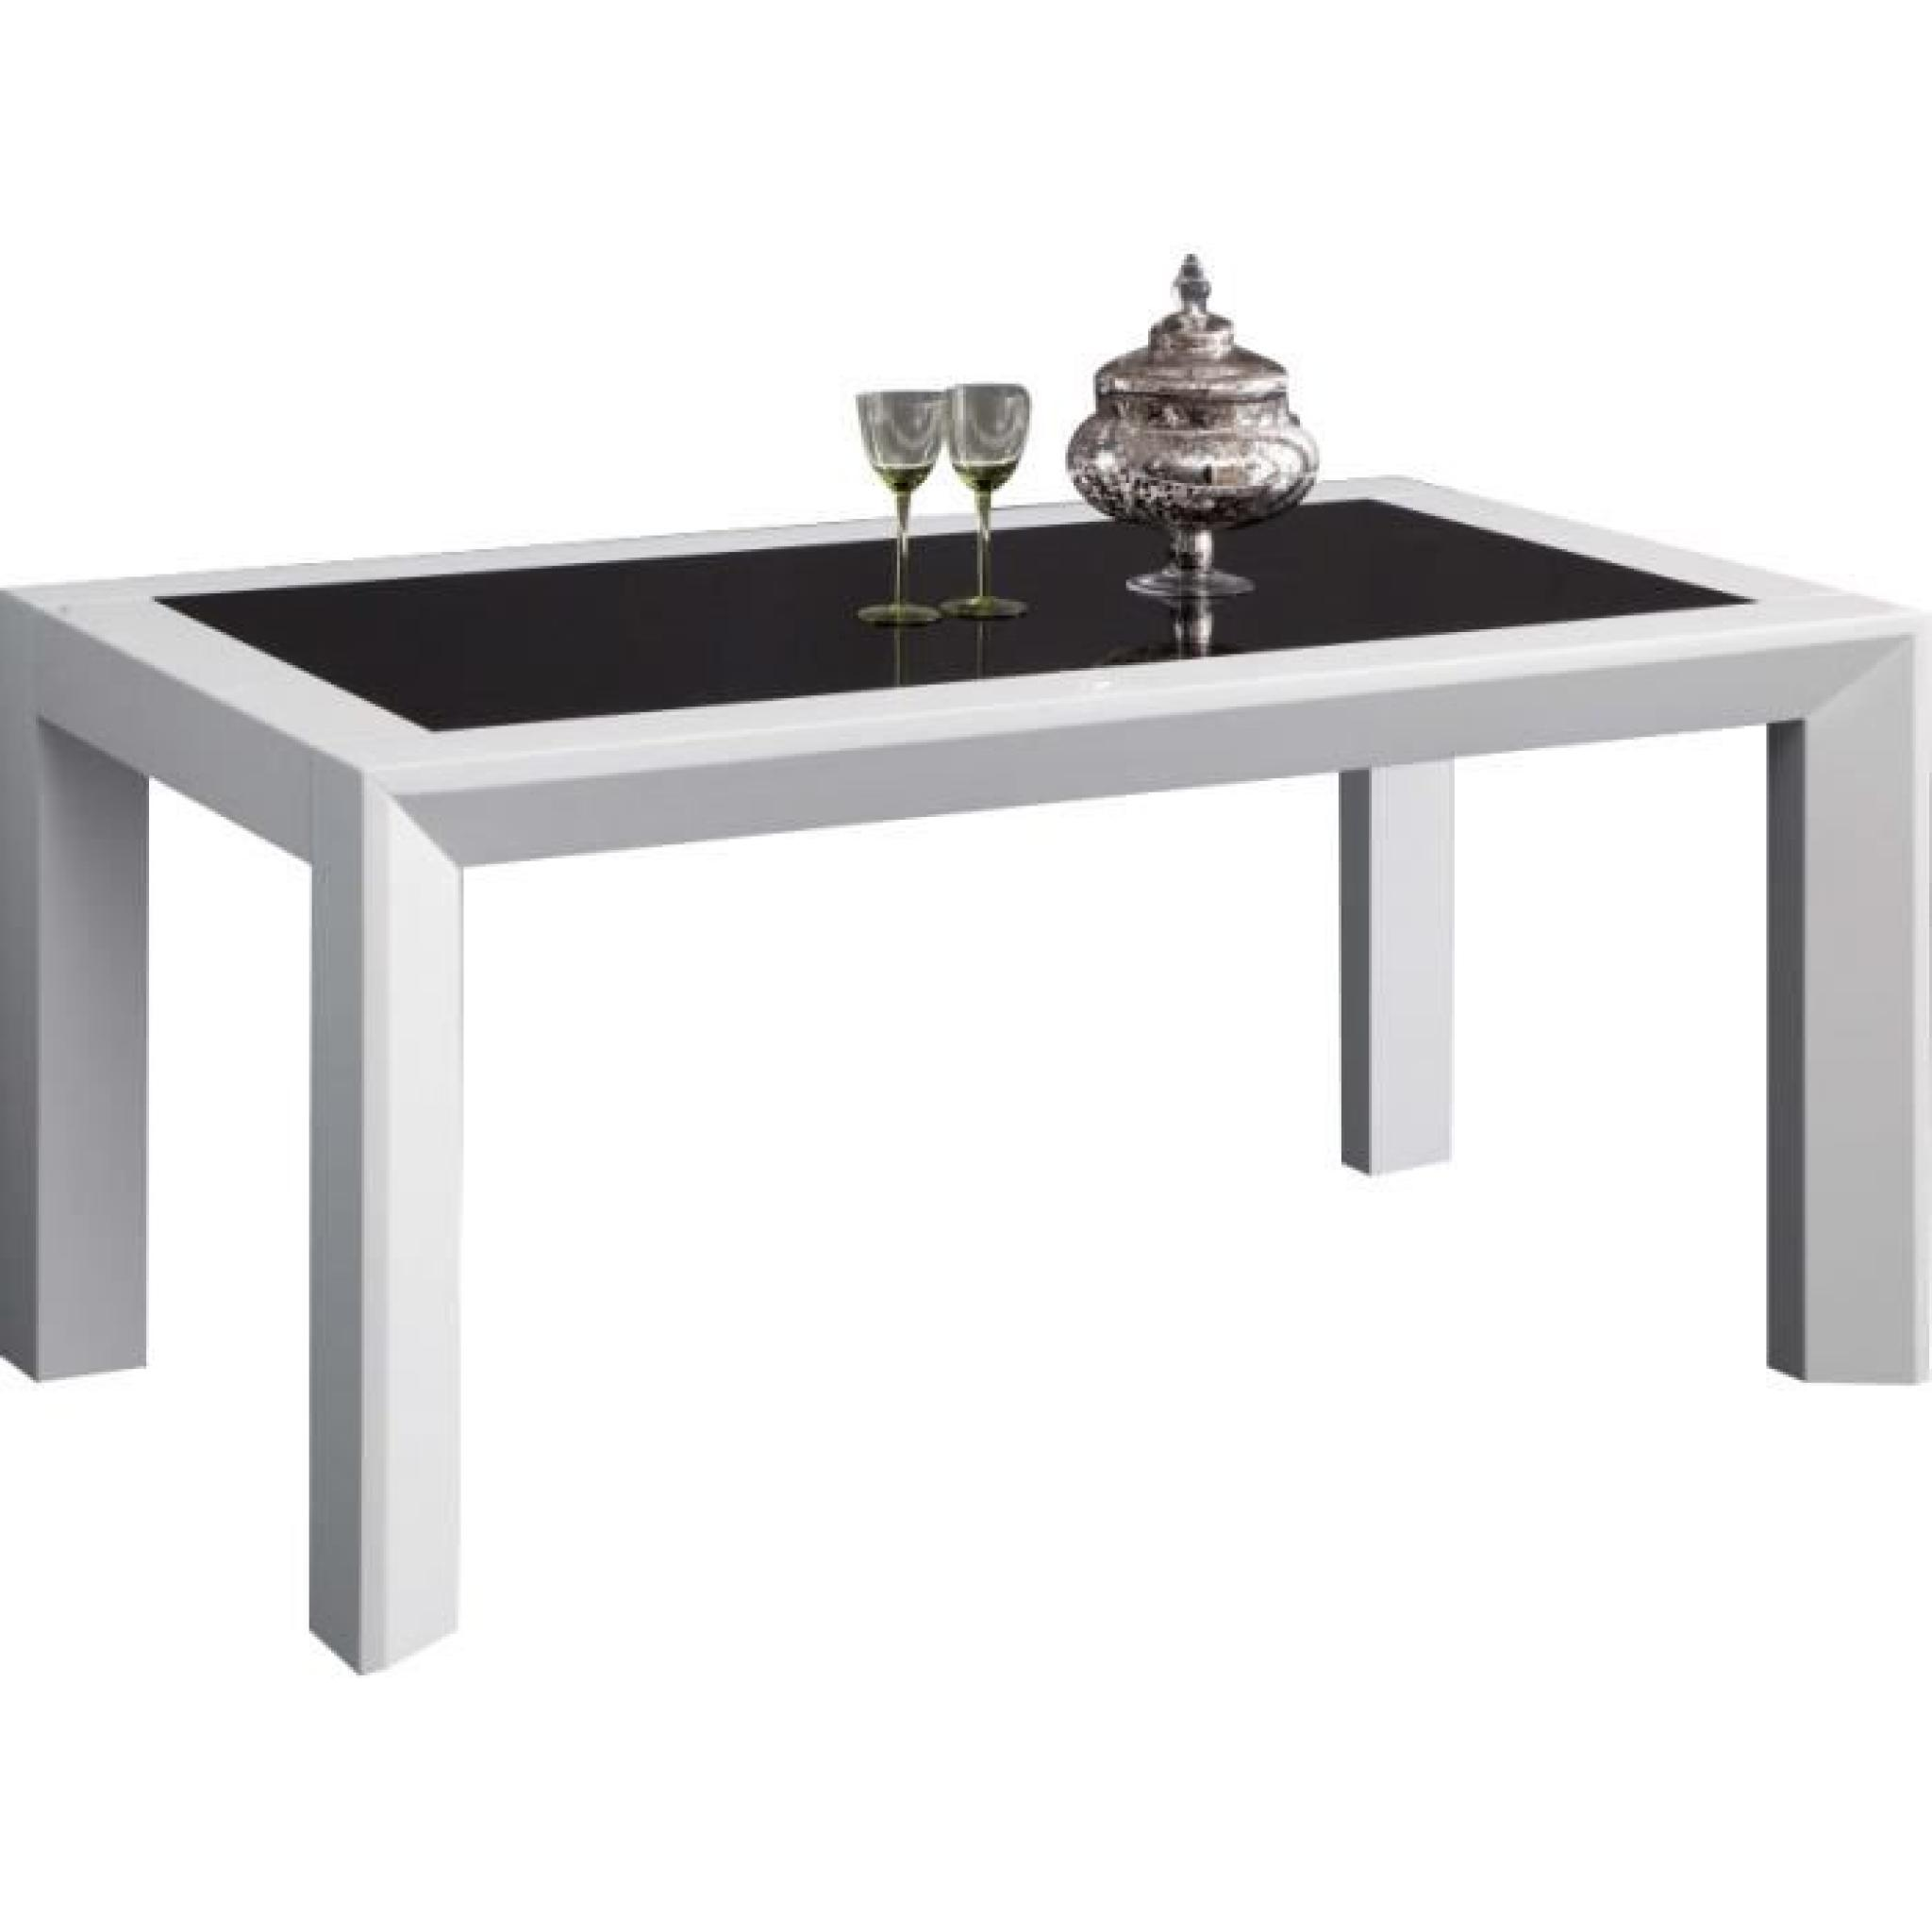 Table salle a manger blanc maison design for Table salle a manger blanc